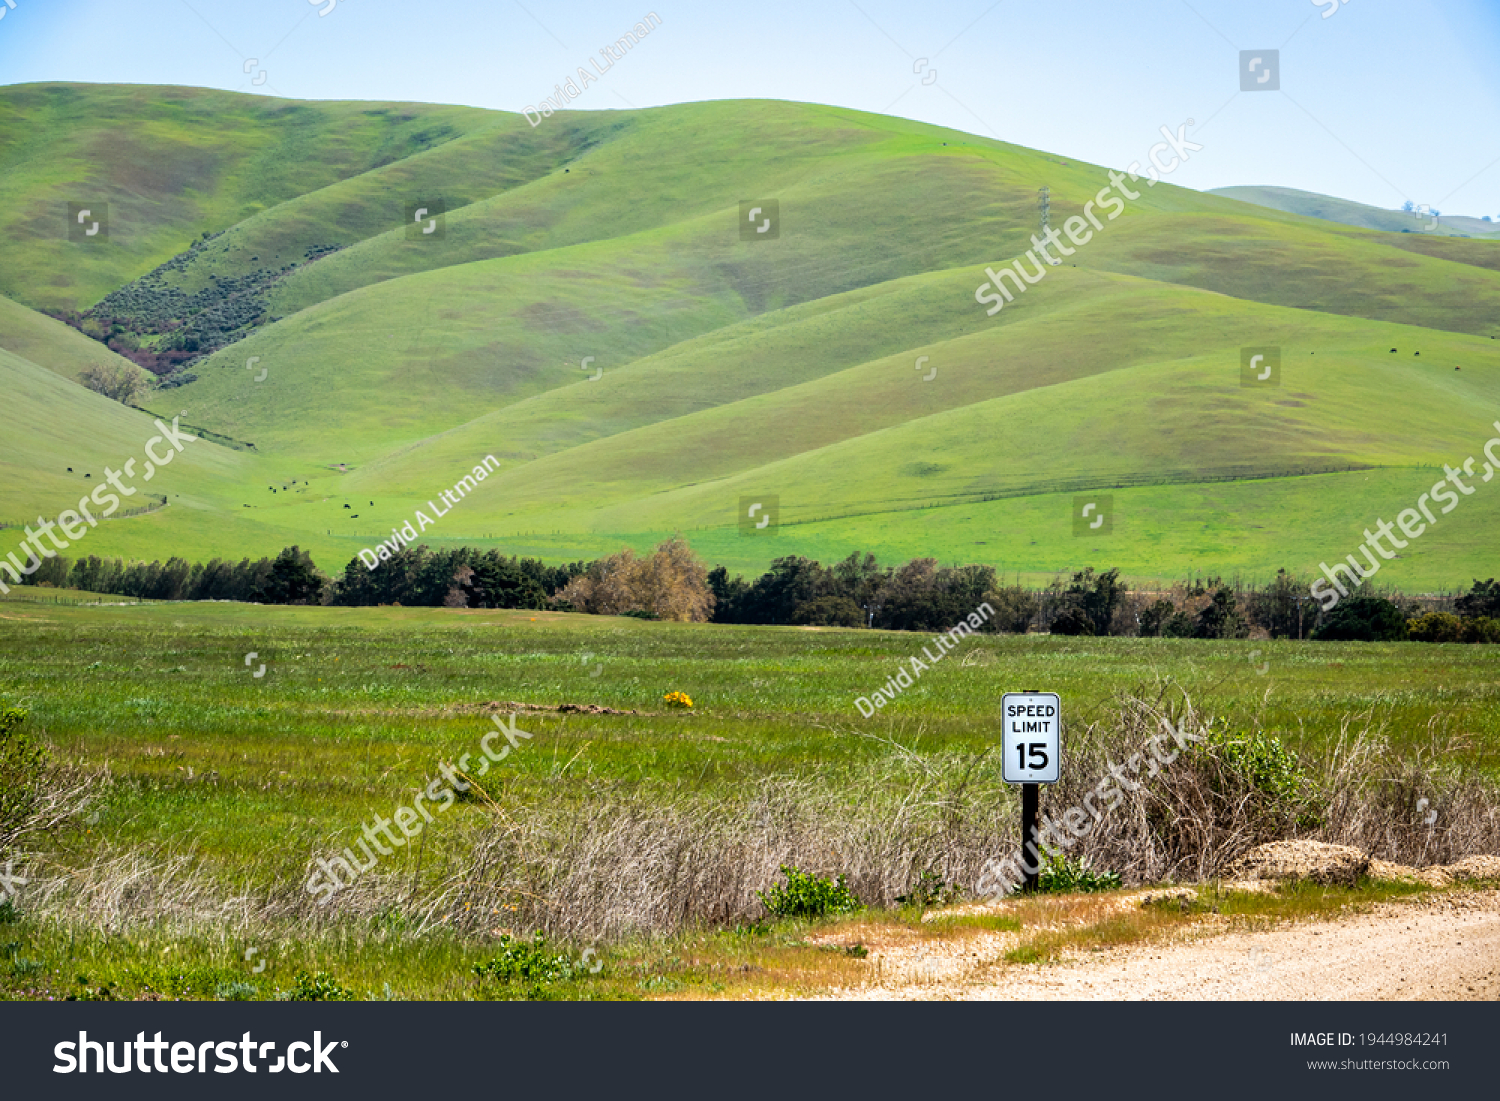 A speed limit sign stands on the side of a rural road in the Salinas Valley of Monterey County in California, with grass covered foothills of the Gabilan Mountains in the background.